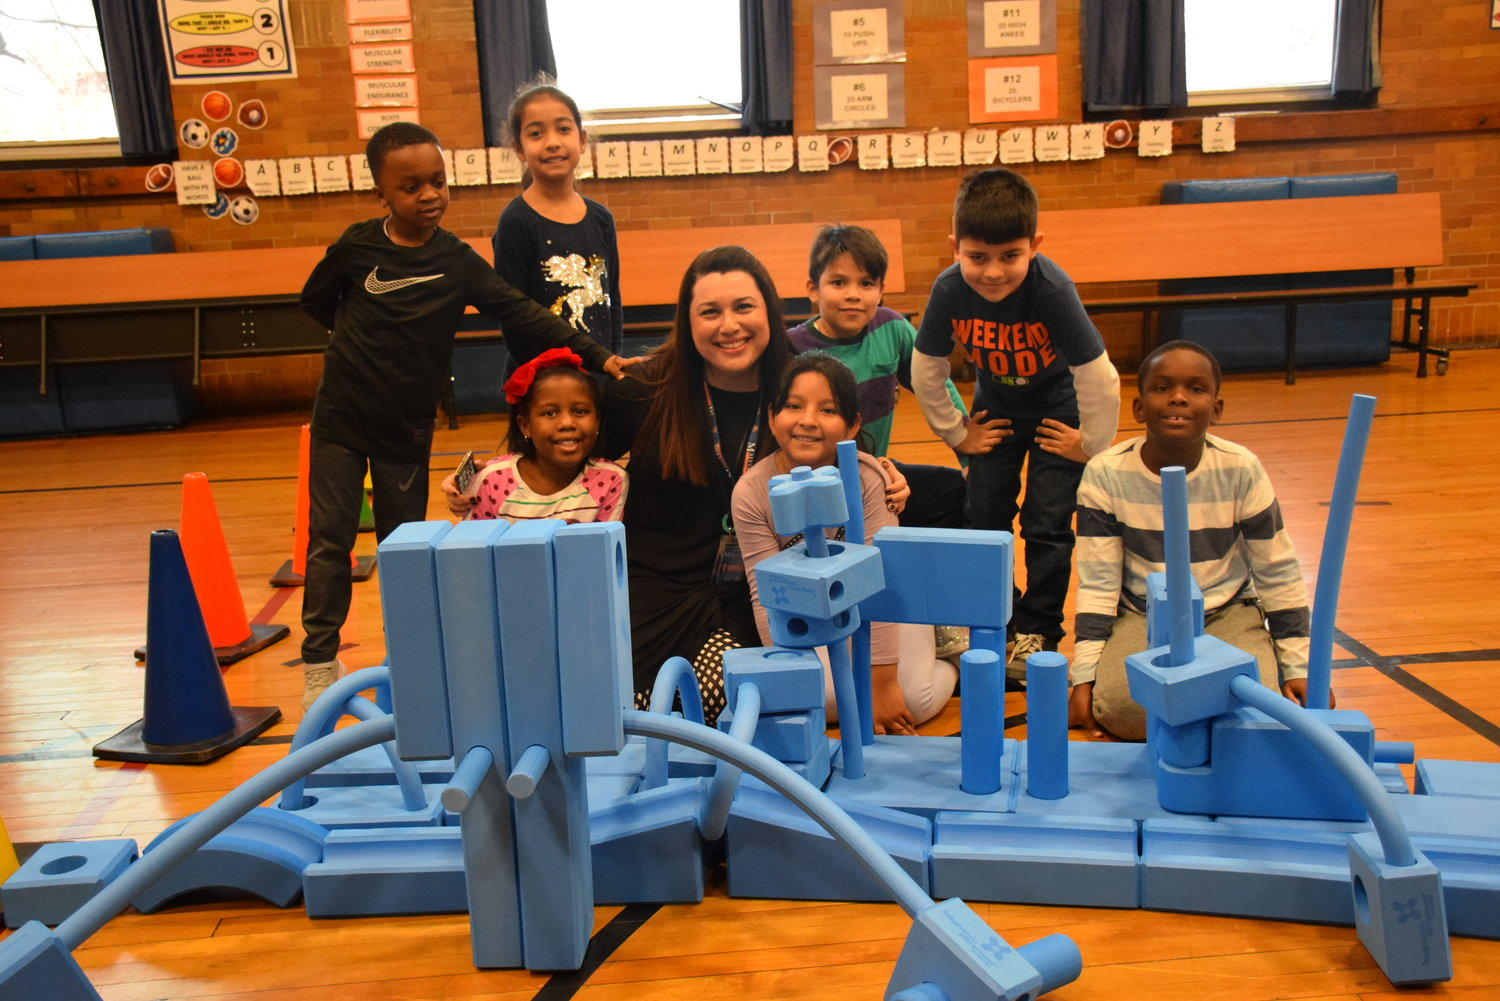 Davison Avenue Intermediate School Principal Rachel Gross joined students as they took part in national Global School Play Day.